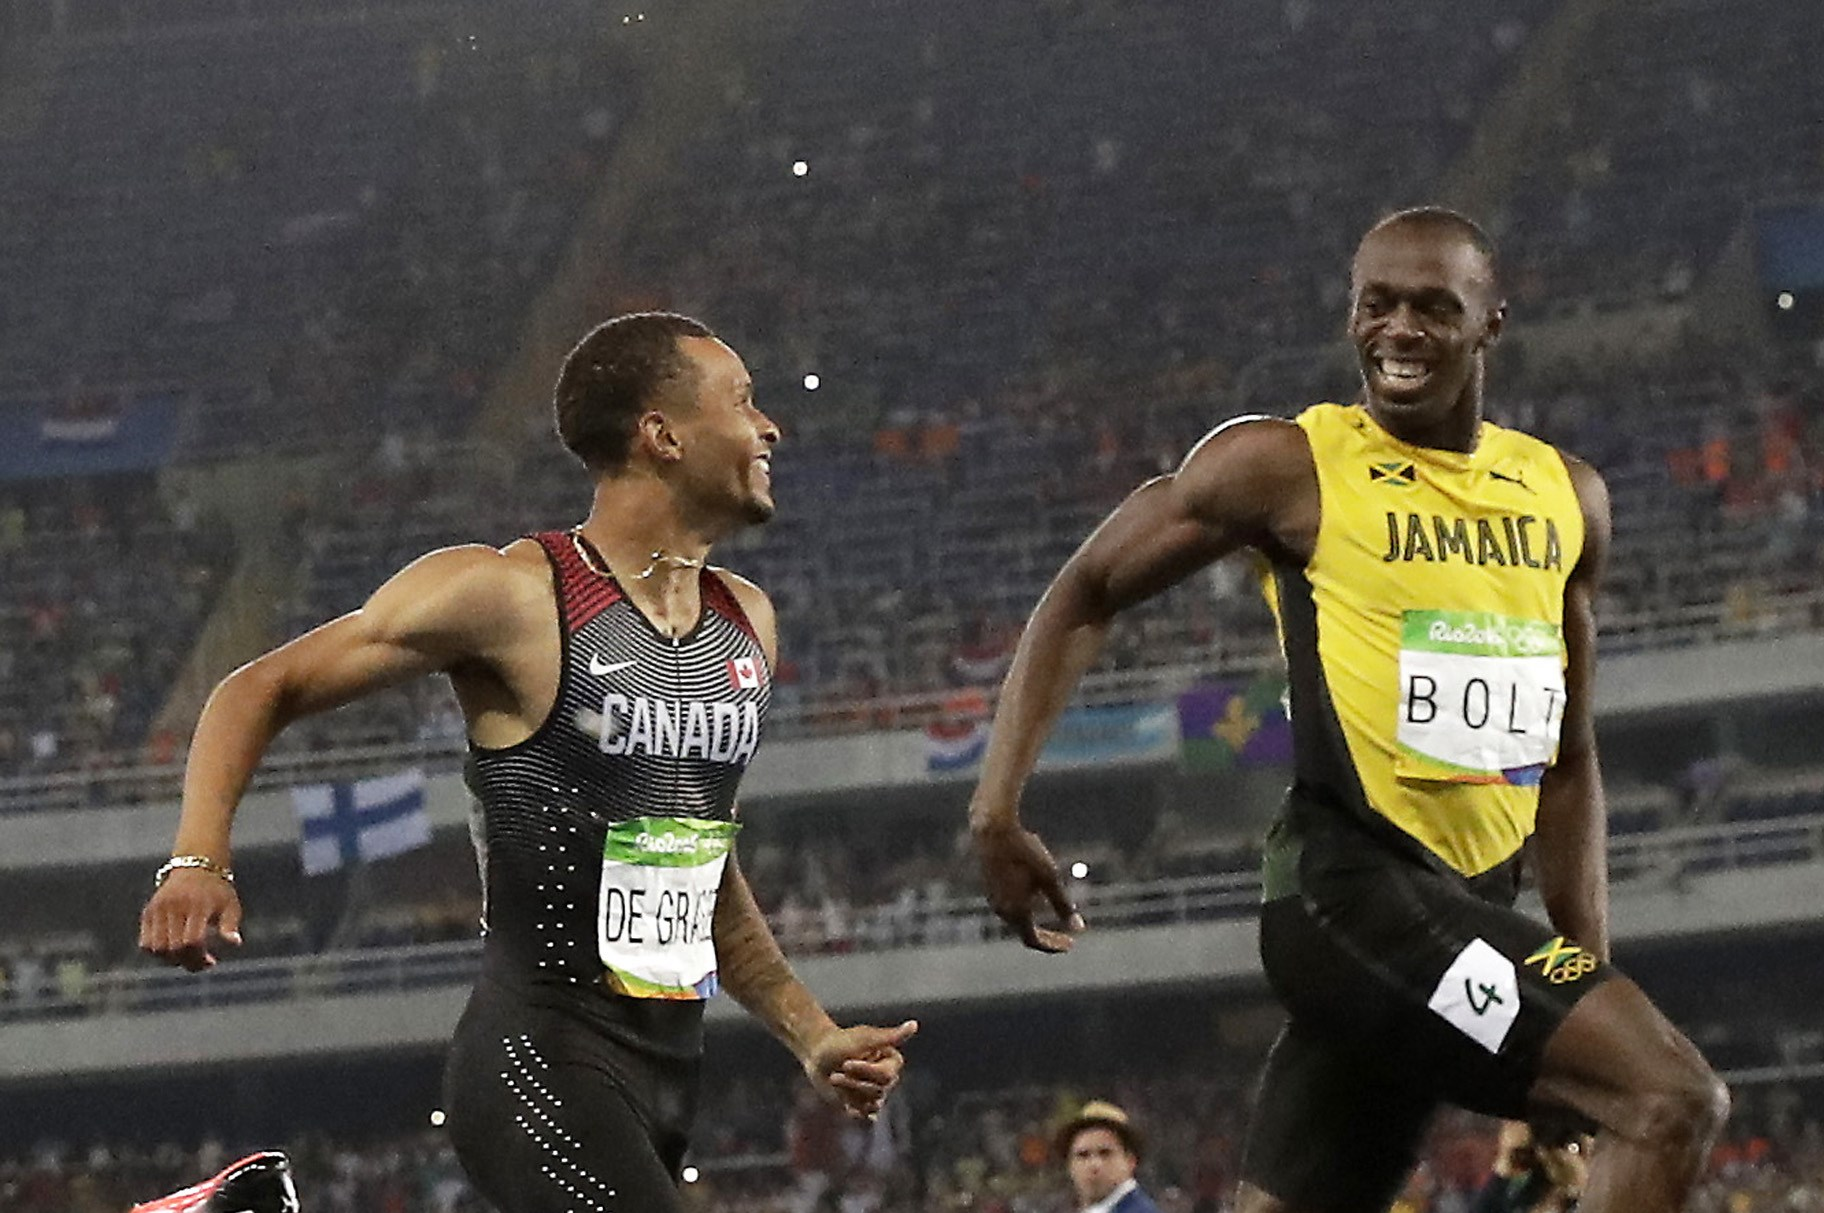 Canada's Andre De Grasse, left, and Jamaica's Usain Bolt smile at each other in a men's 200-meter semifinal, during the athletics competitions of the 2016 Summer Olympics at the Olympic stadium in Rio de Janeiro, Brazil, Wednesday, Aug. 17, 2016. (AP Phot